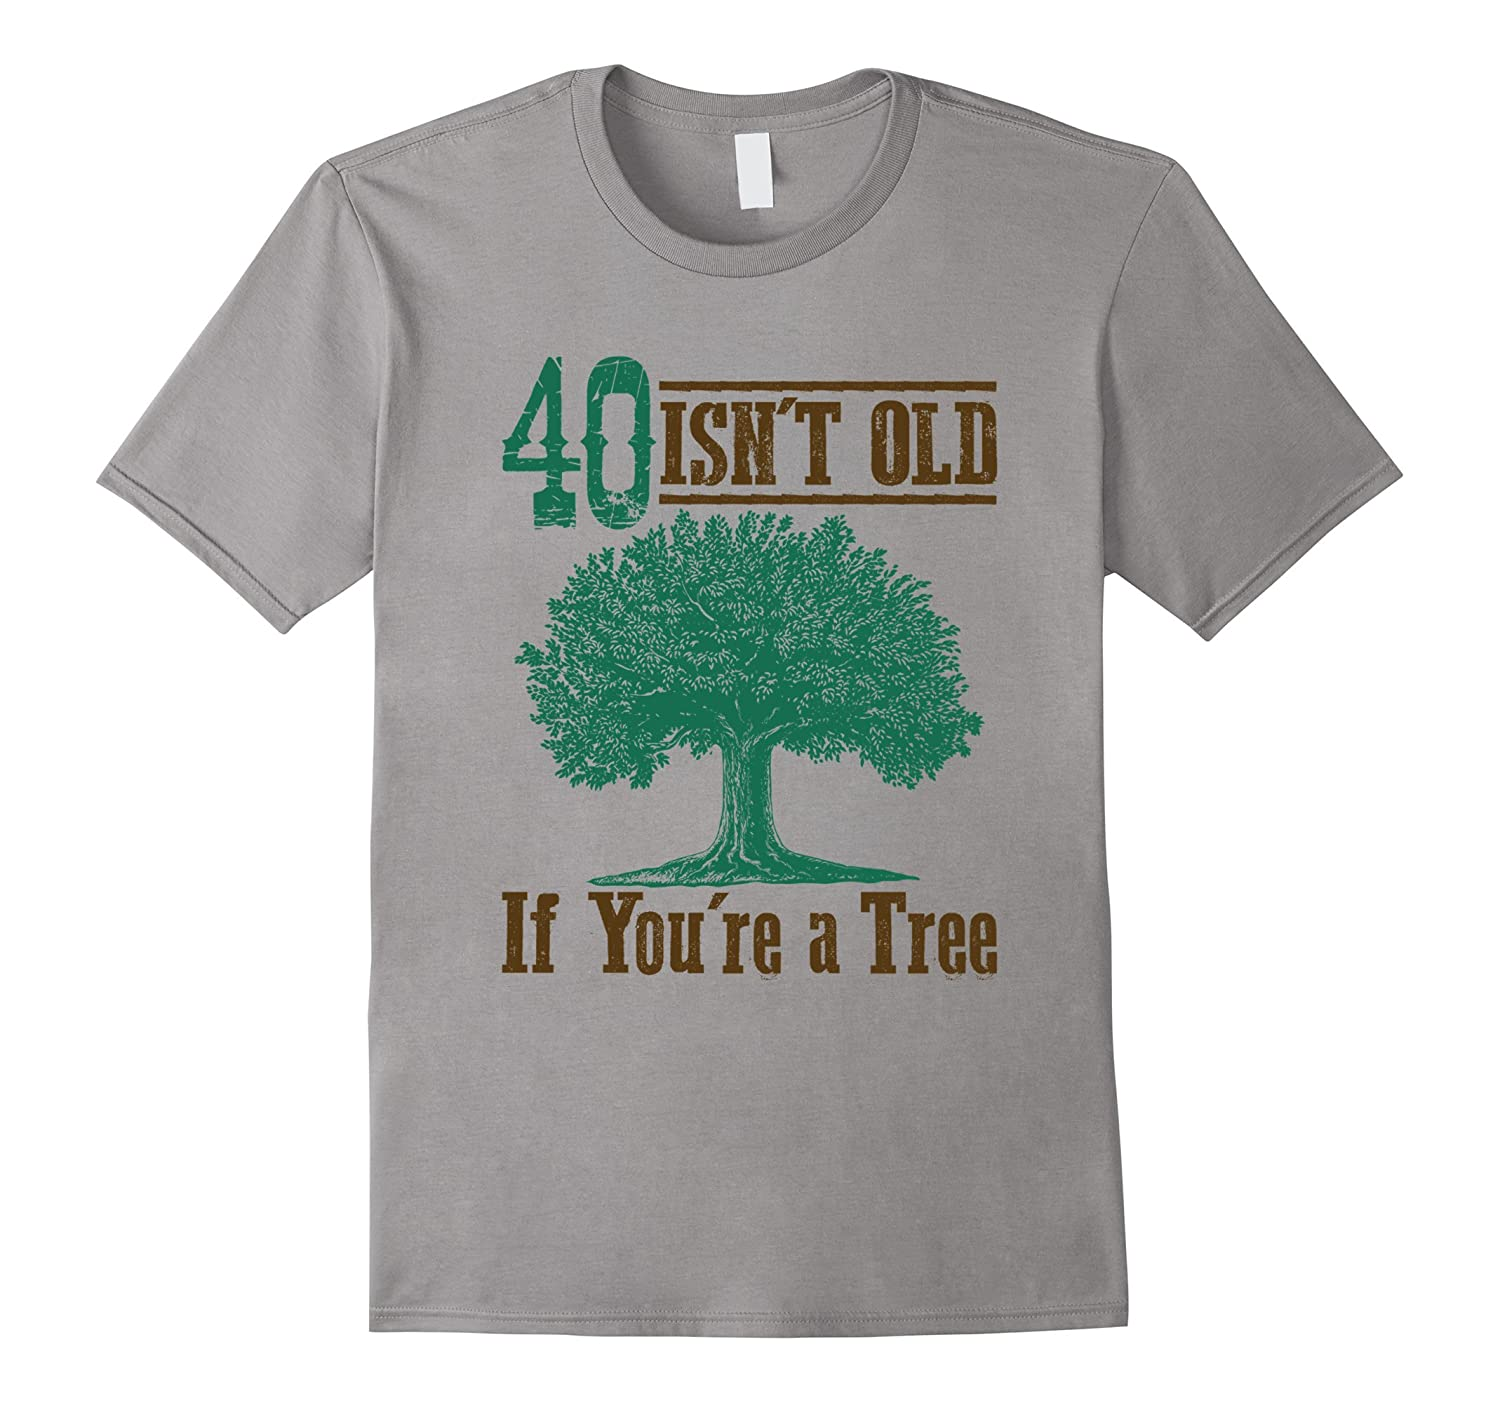 40 Isn't Old (If You're a Tree) - Funny 40th Birthday Tee-T-Shirt